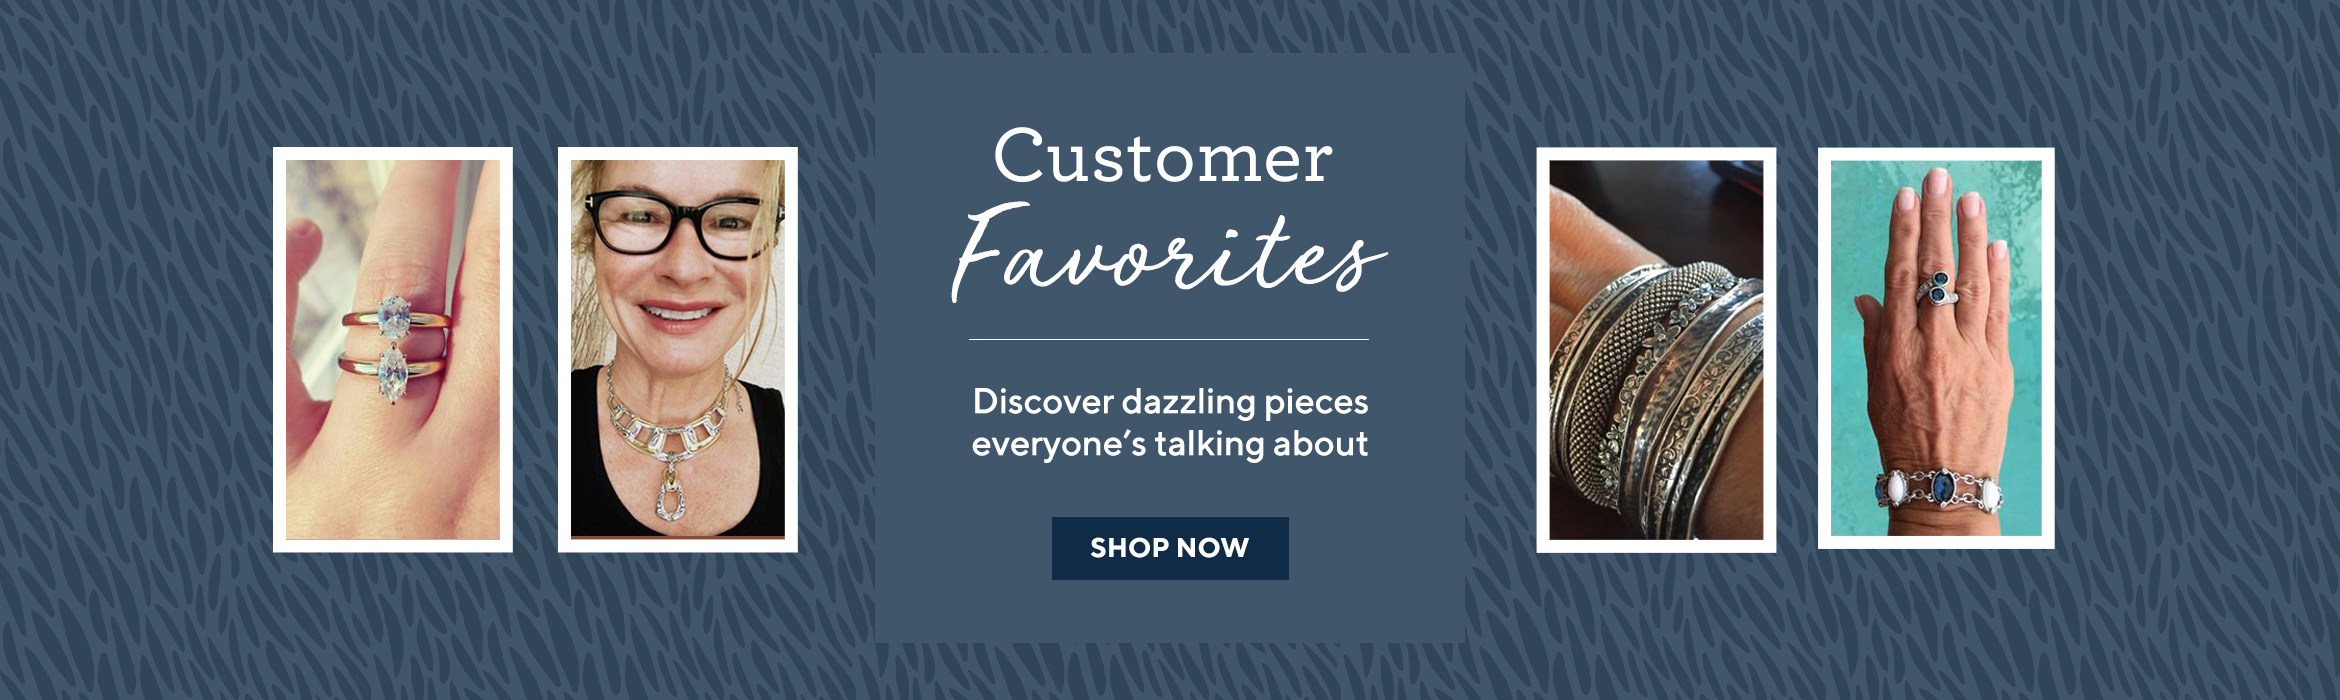 Customer Favorites  Discover dazzling pieces everyone's talking about